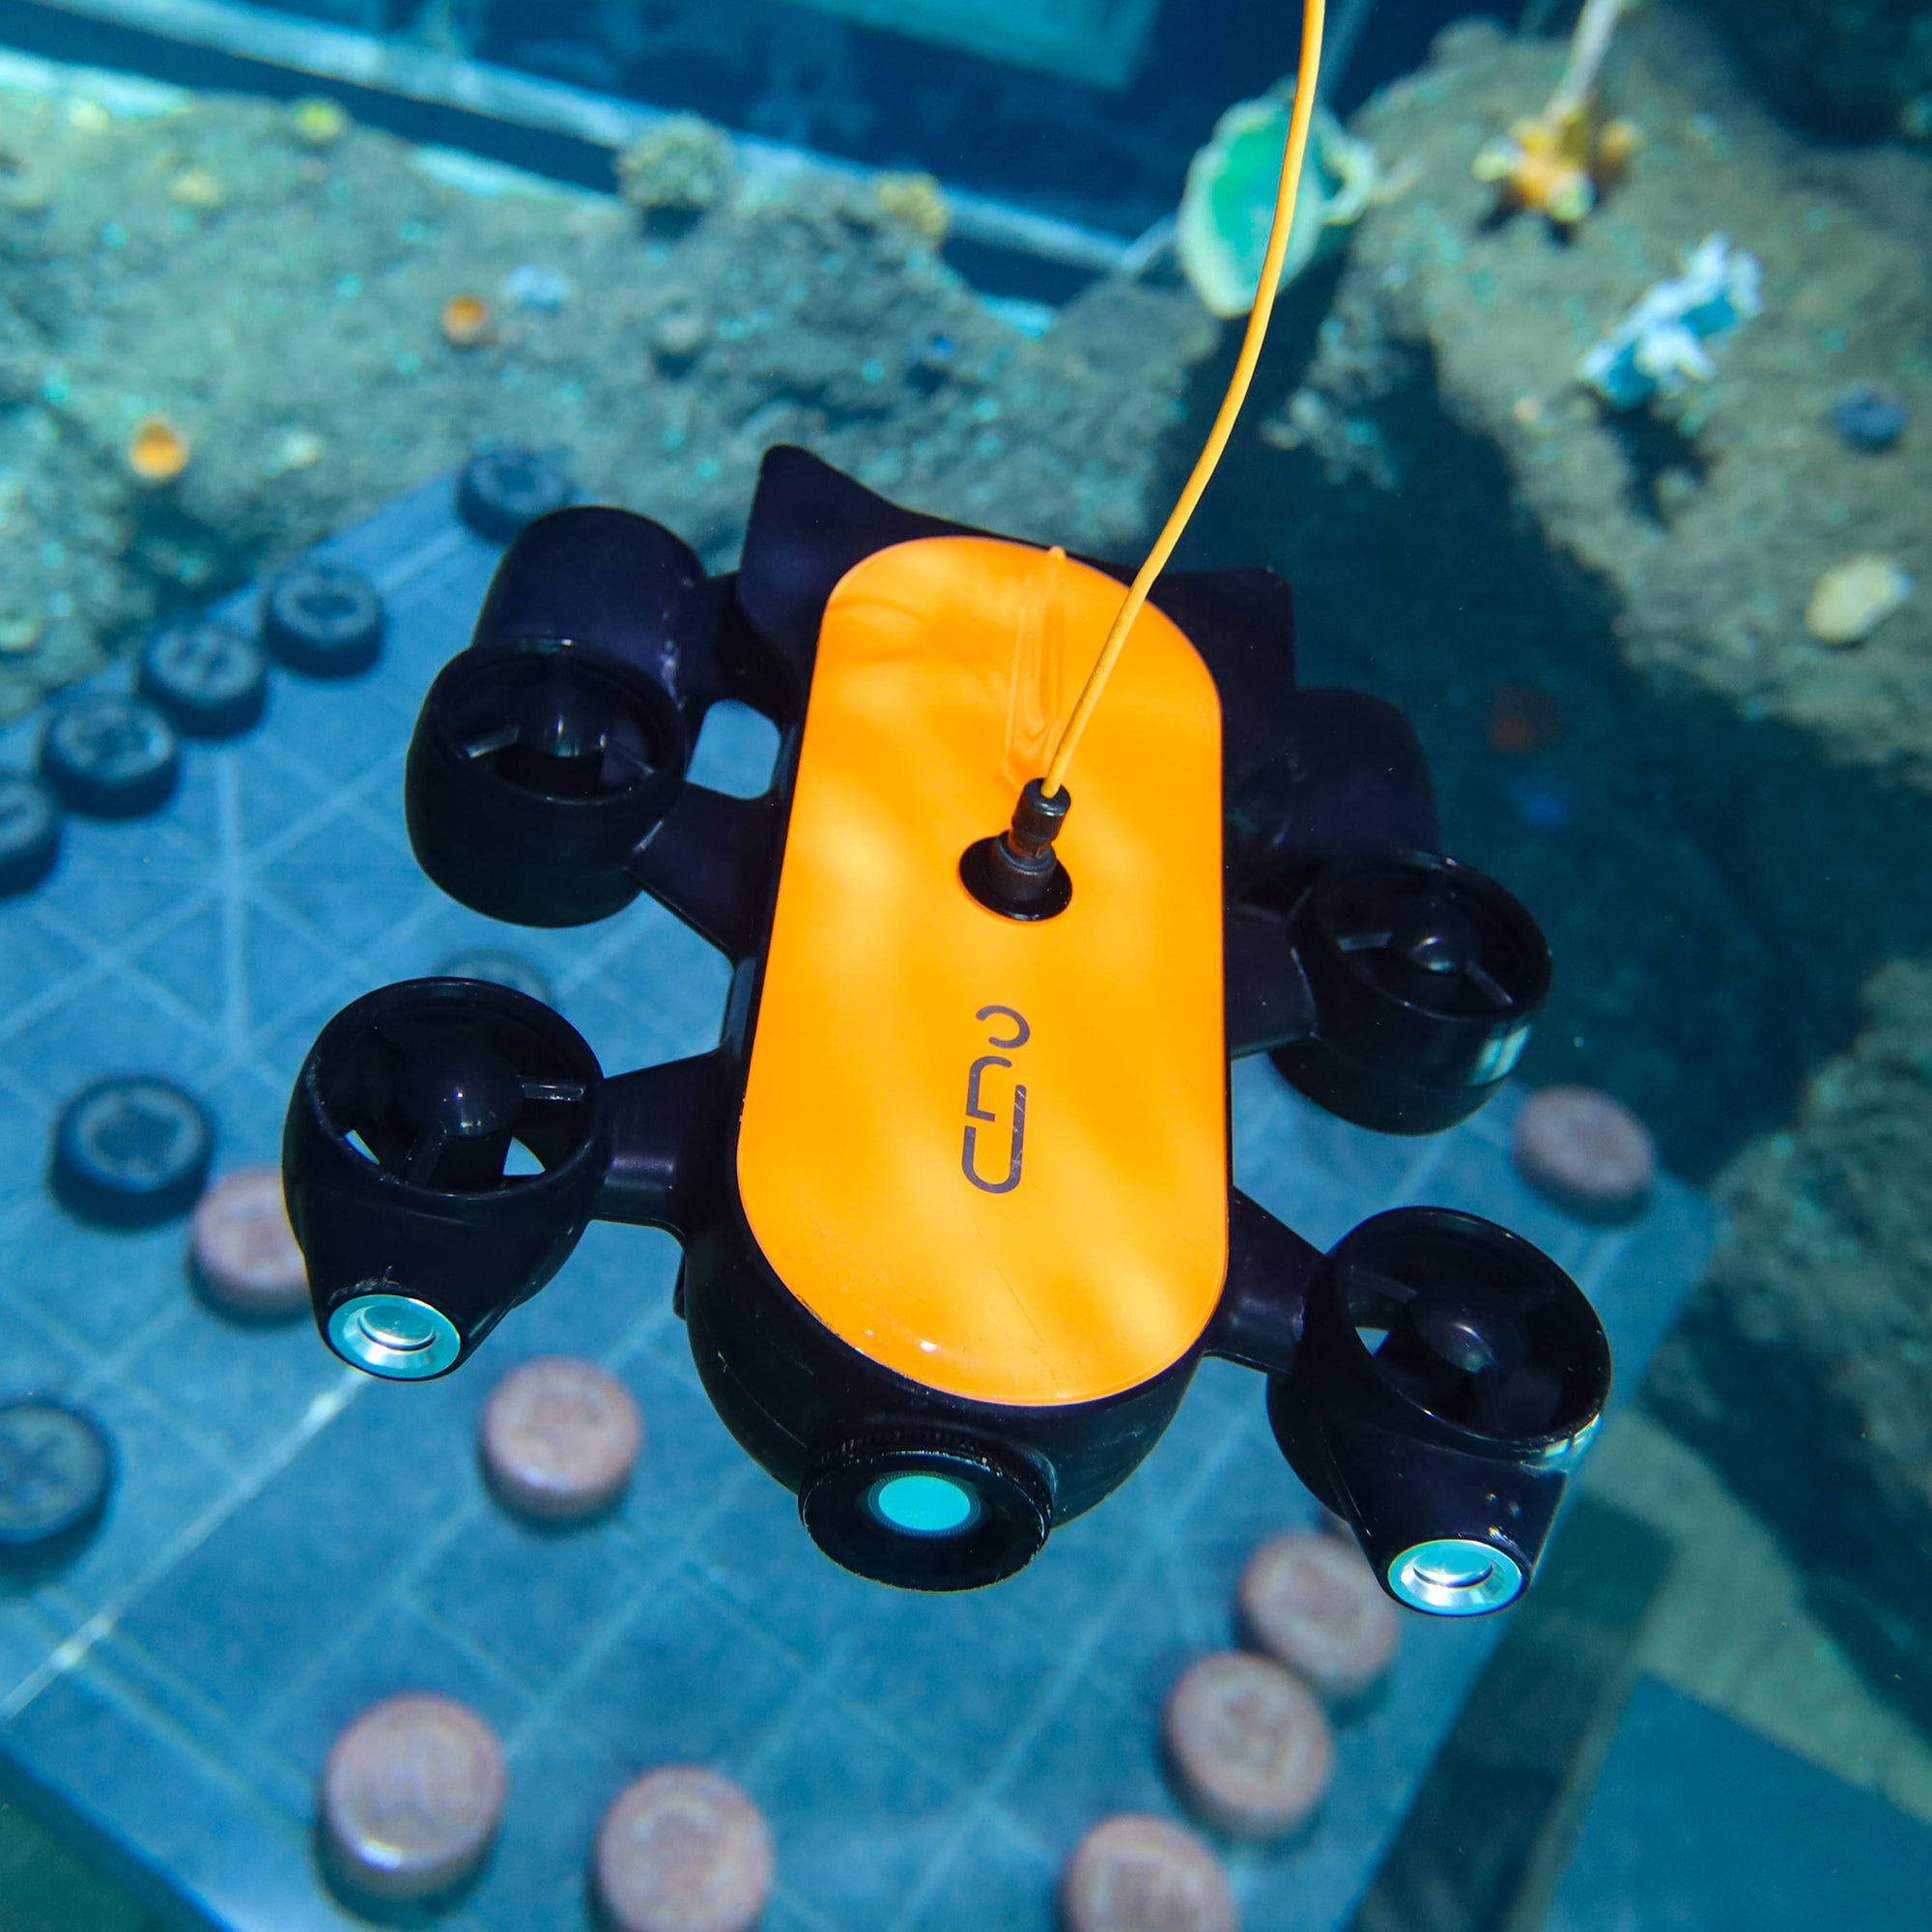 Underwater Drone Geneinno T1 100M Tether in Orange